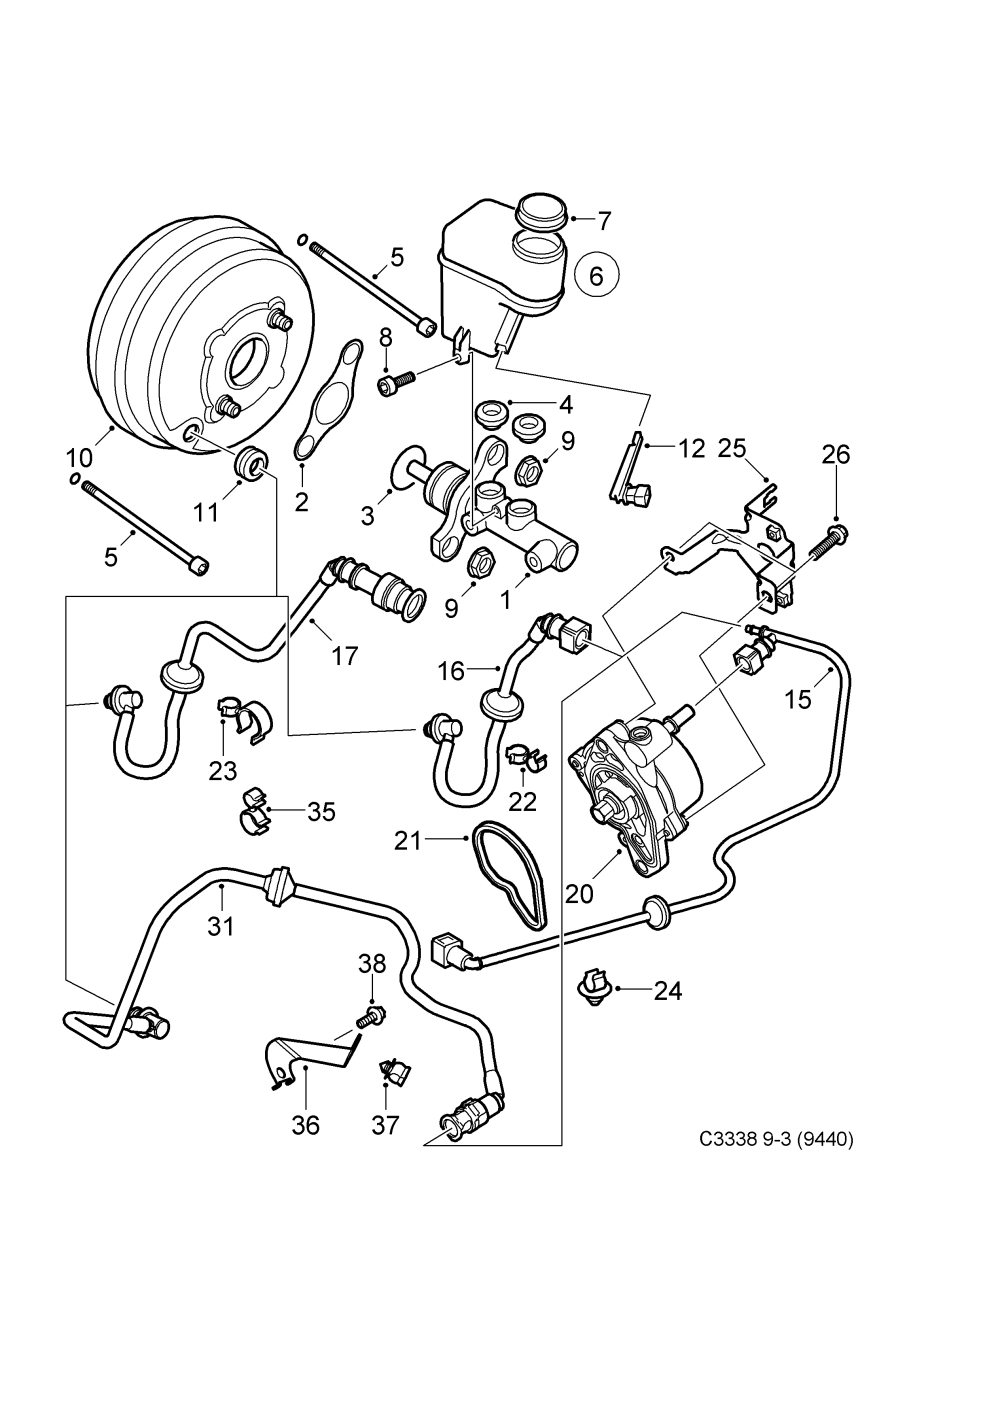 medium resolution of saab 9 3 9440 spare parts catalog epc